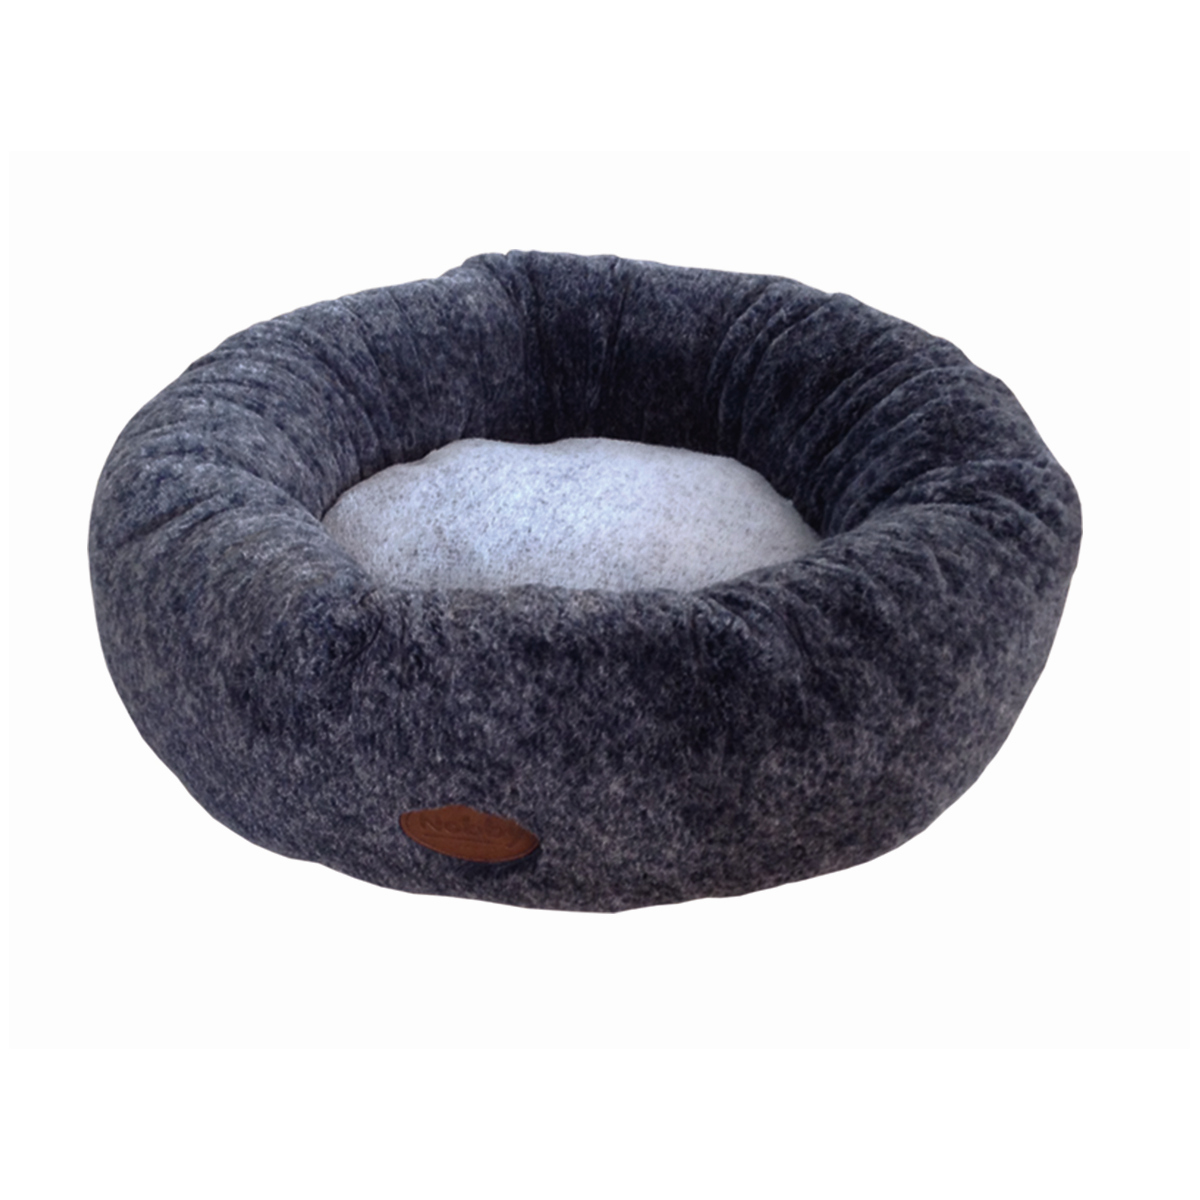 NB DONUT BED CUDDLY D.GR 50CM 00001